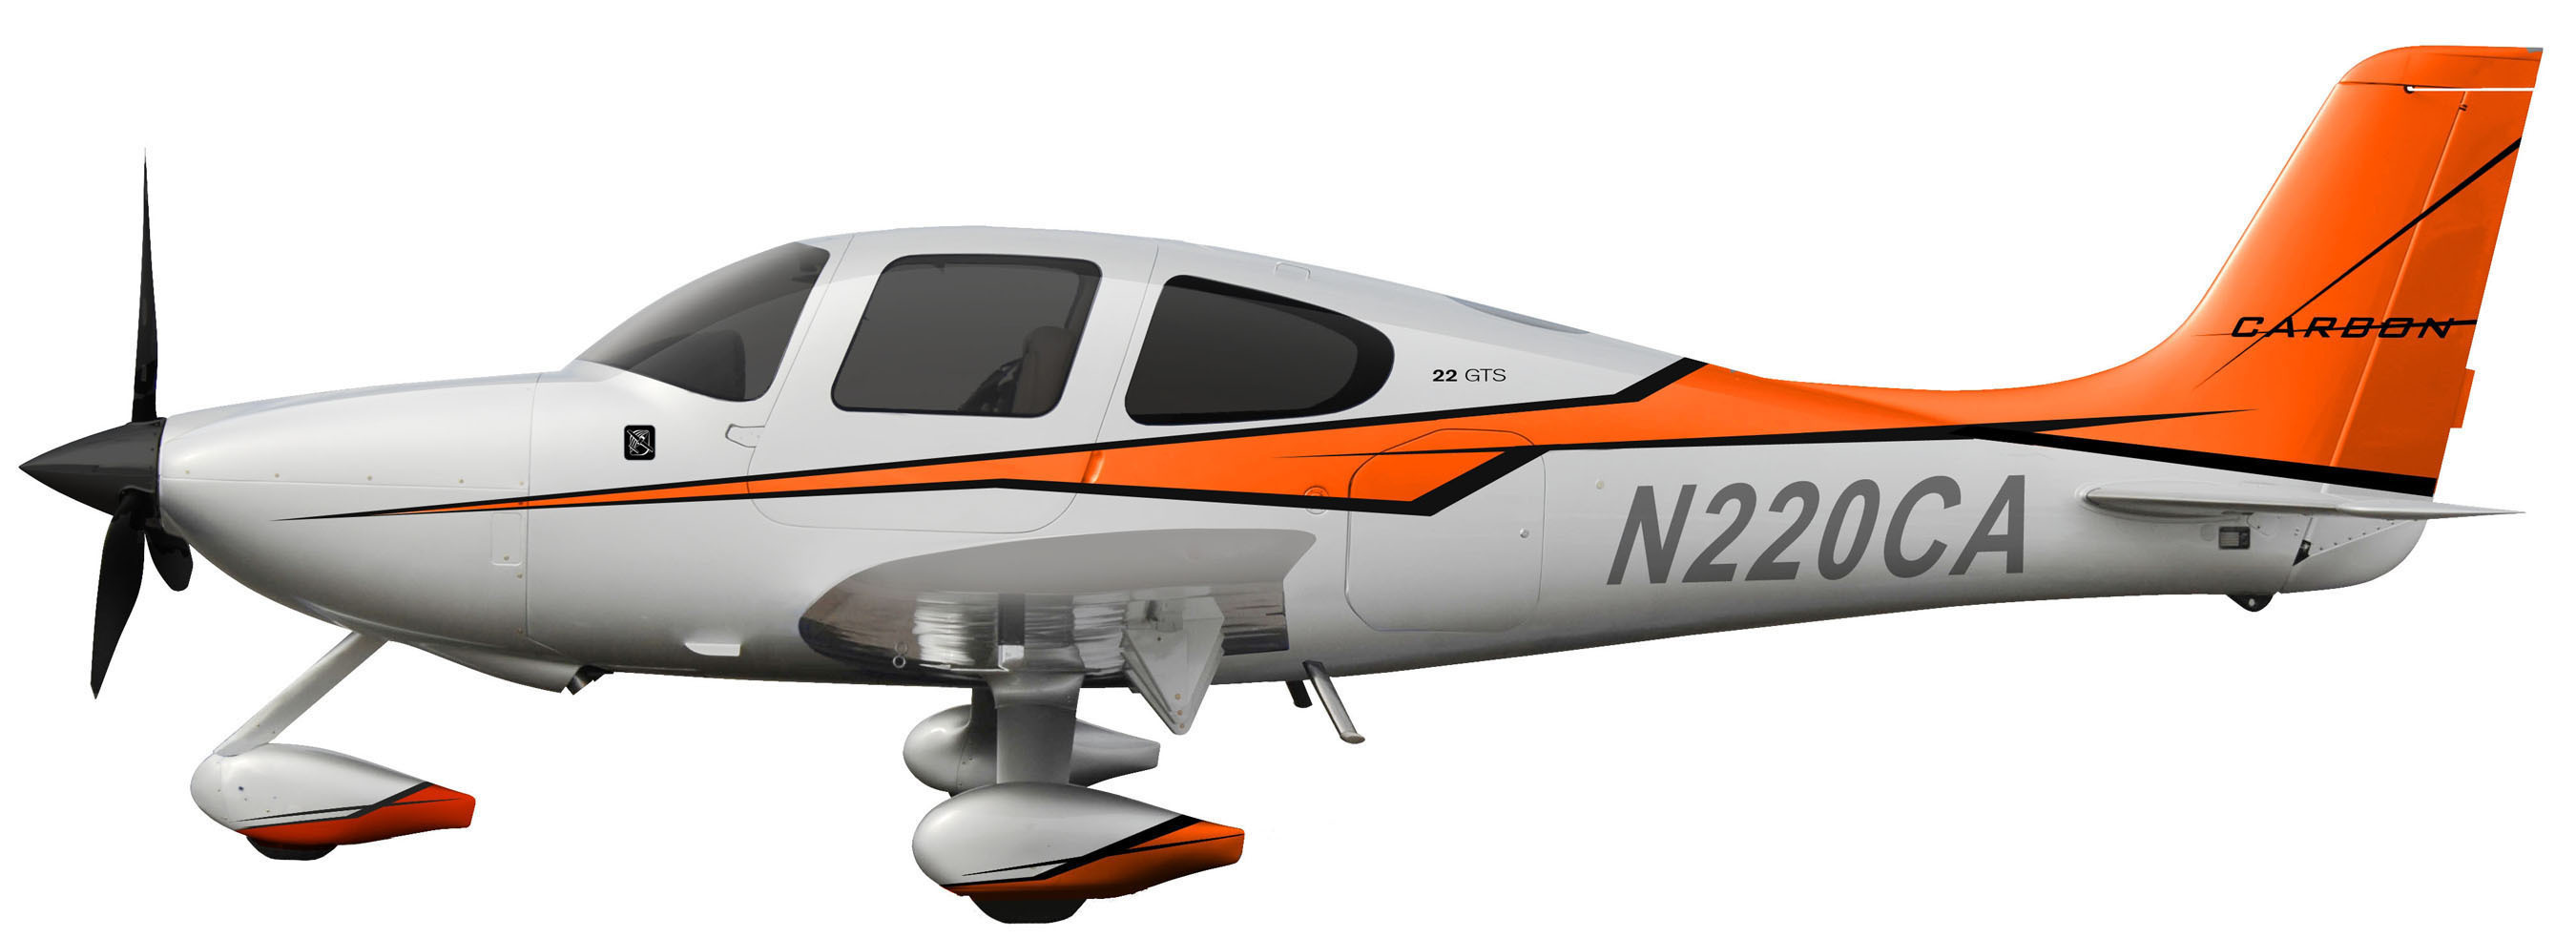 Inspired by the unmistakable style of legendary sports cars, the 2014 Cirrus Aircraft Carbon Appearance package utilizes a new palette of colors for an exhilarating new look. (PRNewsFoto/Cirrus Aircraft) (PRNewsFoto/CIRRUS AIRCRAFT)